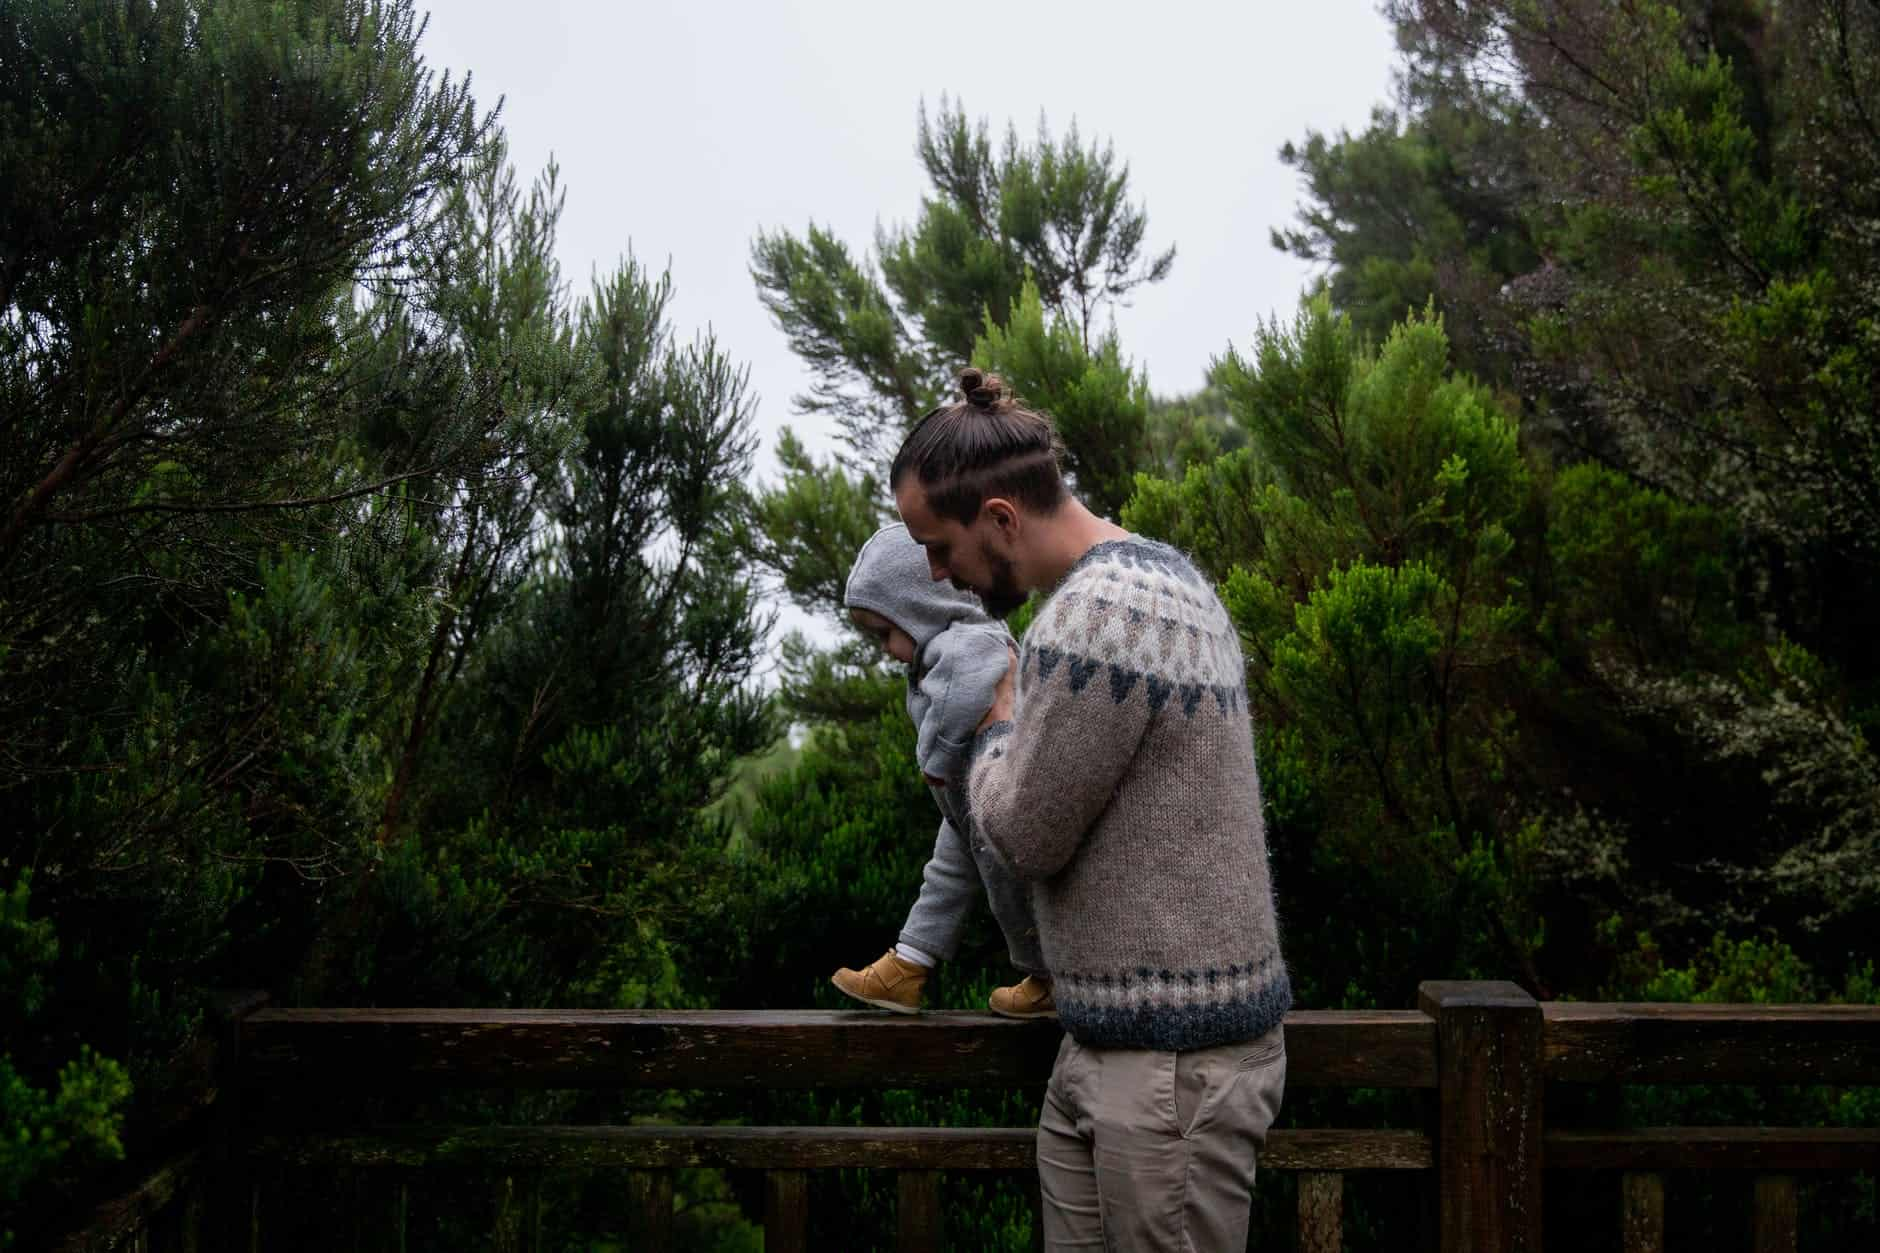 father playing with son in fir forest - mindfulness matters